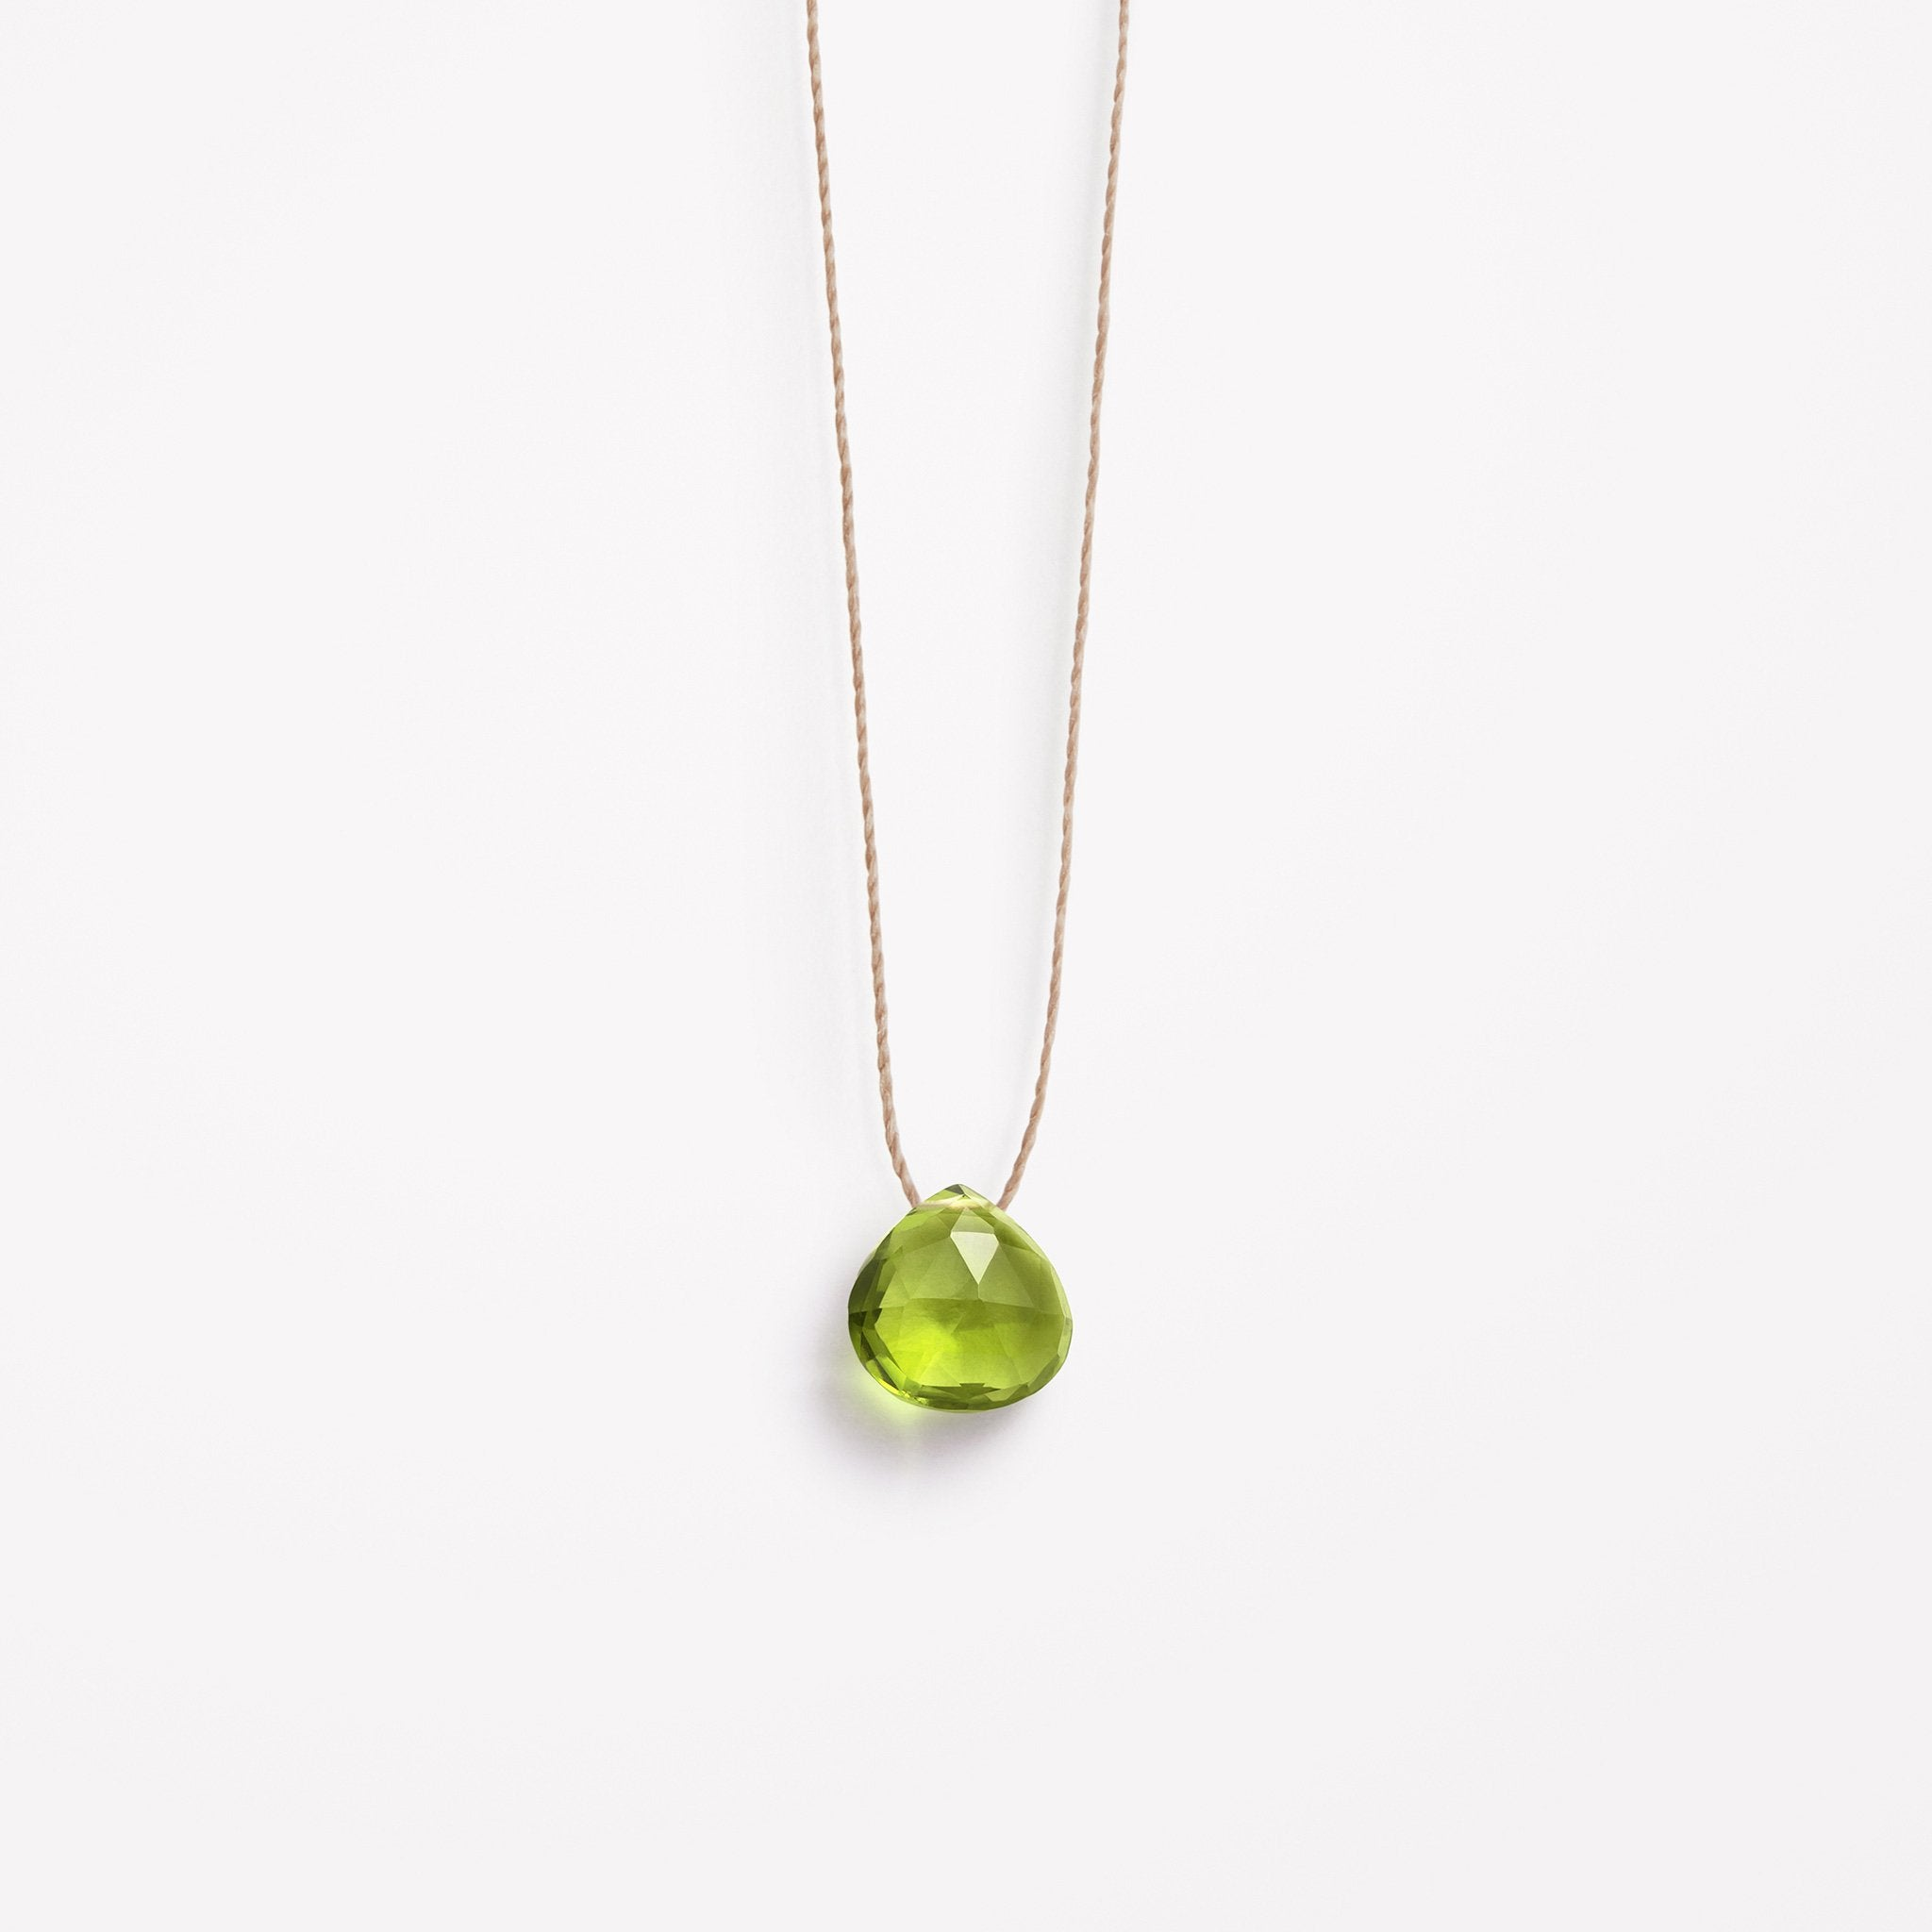 Wanderlust Life Ethically Handmade jewellery made in the UK. Minimalist gold and fine cord jewellery. august birthstone, green peridot fine cord necklace